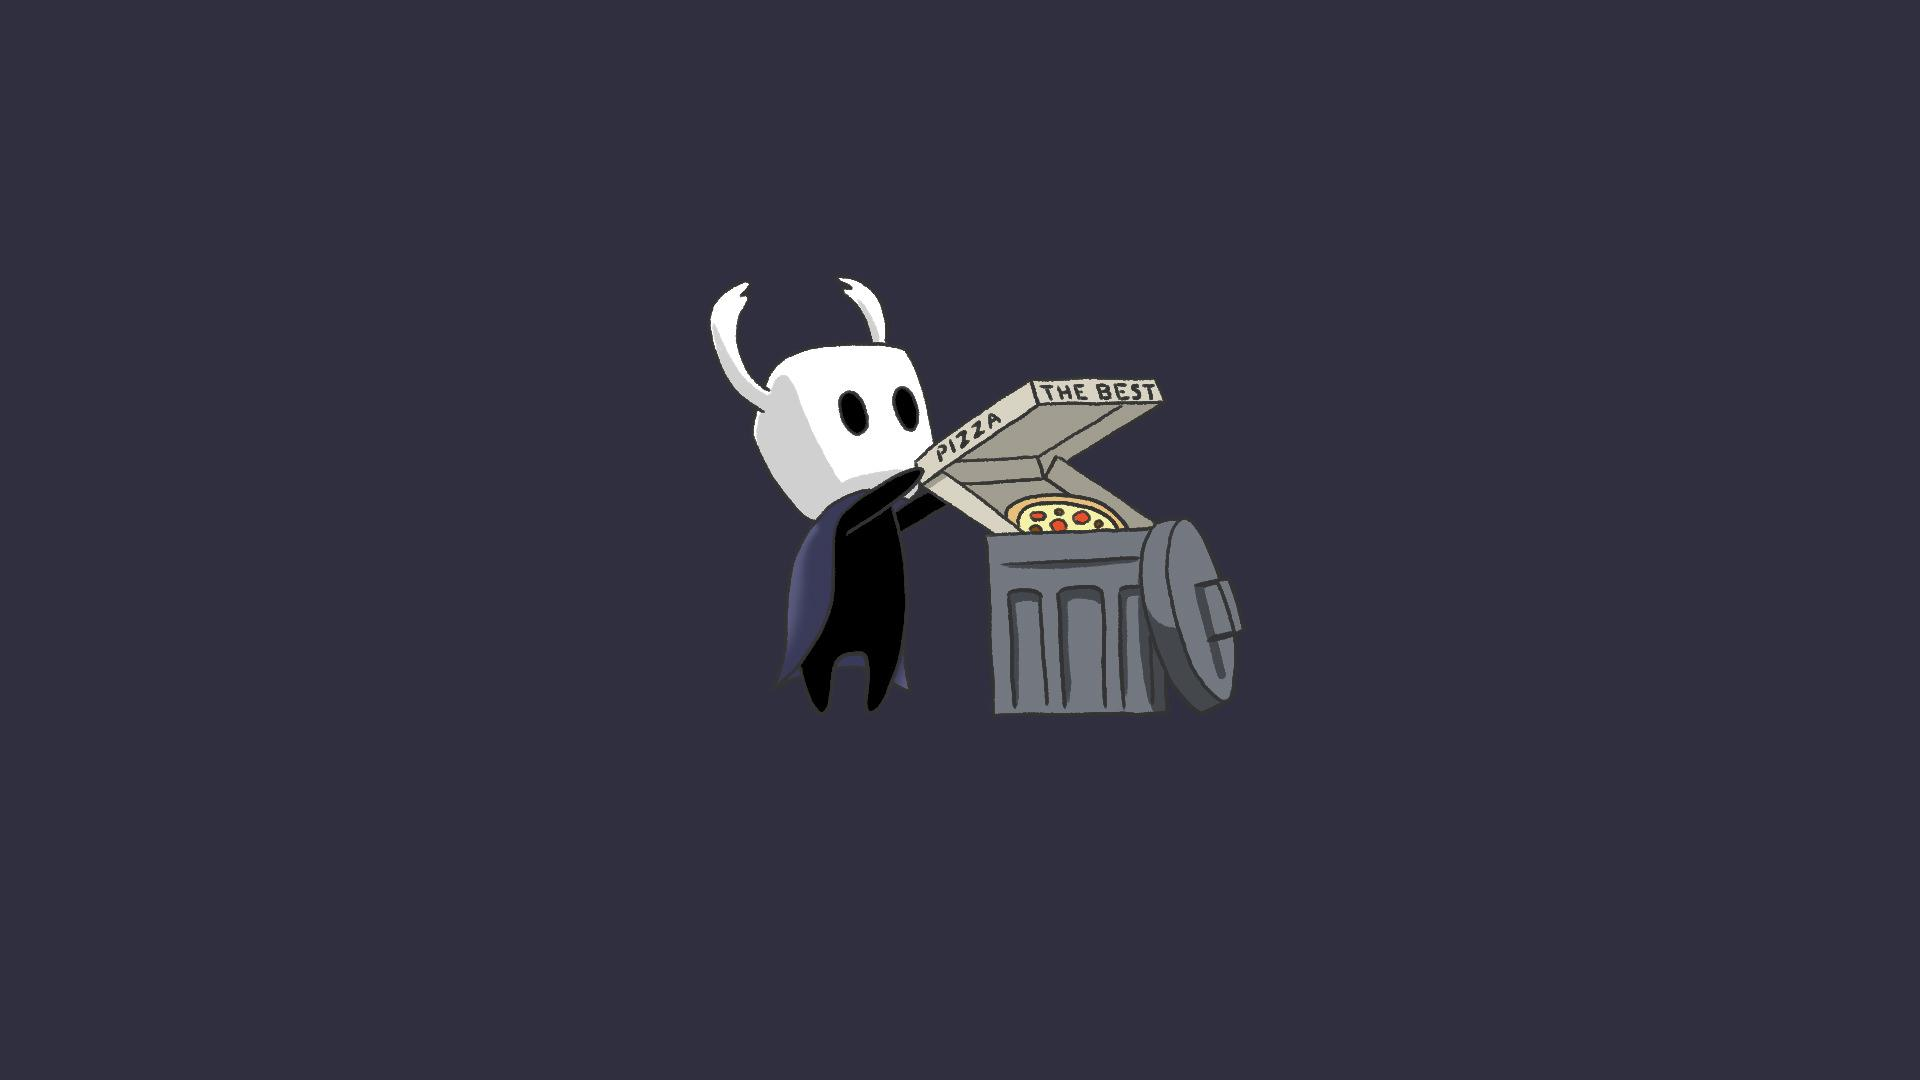 Hollow Knight Minimalist Wallpapers Wallpaper Cave Tons of awesome hollow knight wallpapers to download for free.